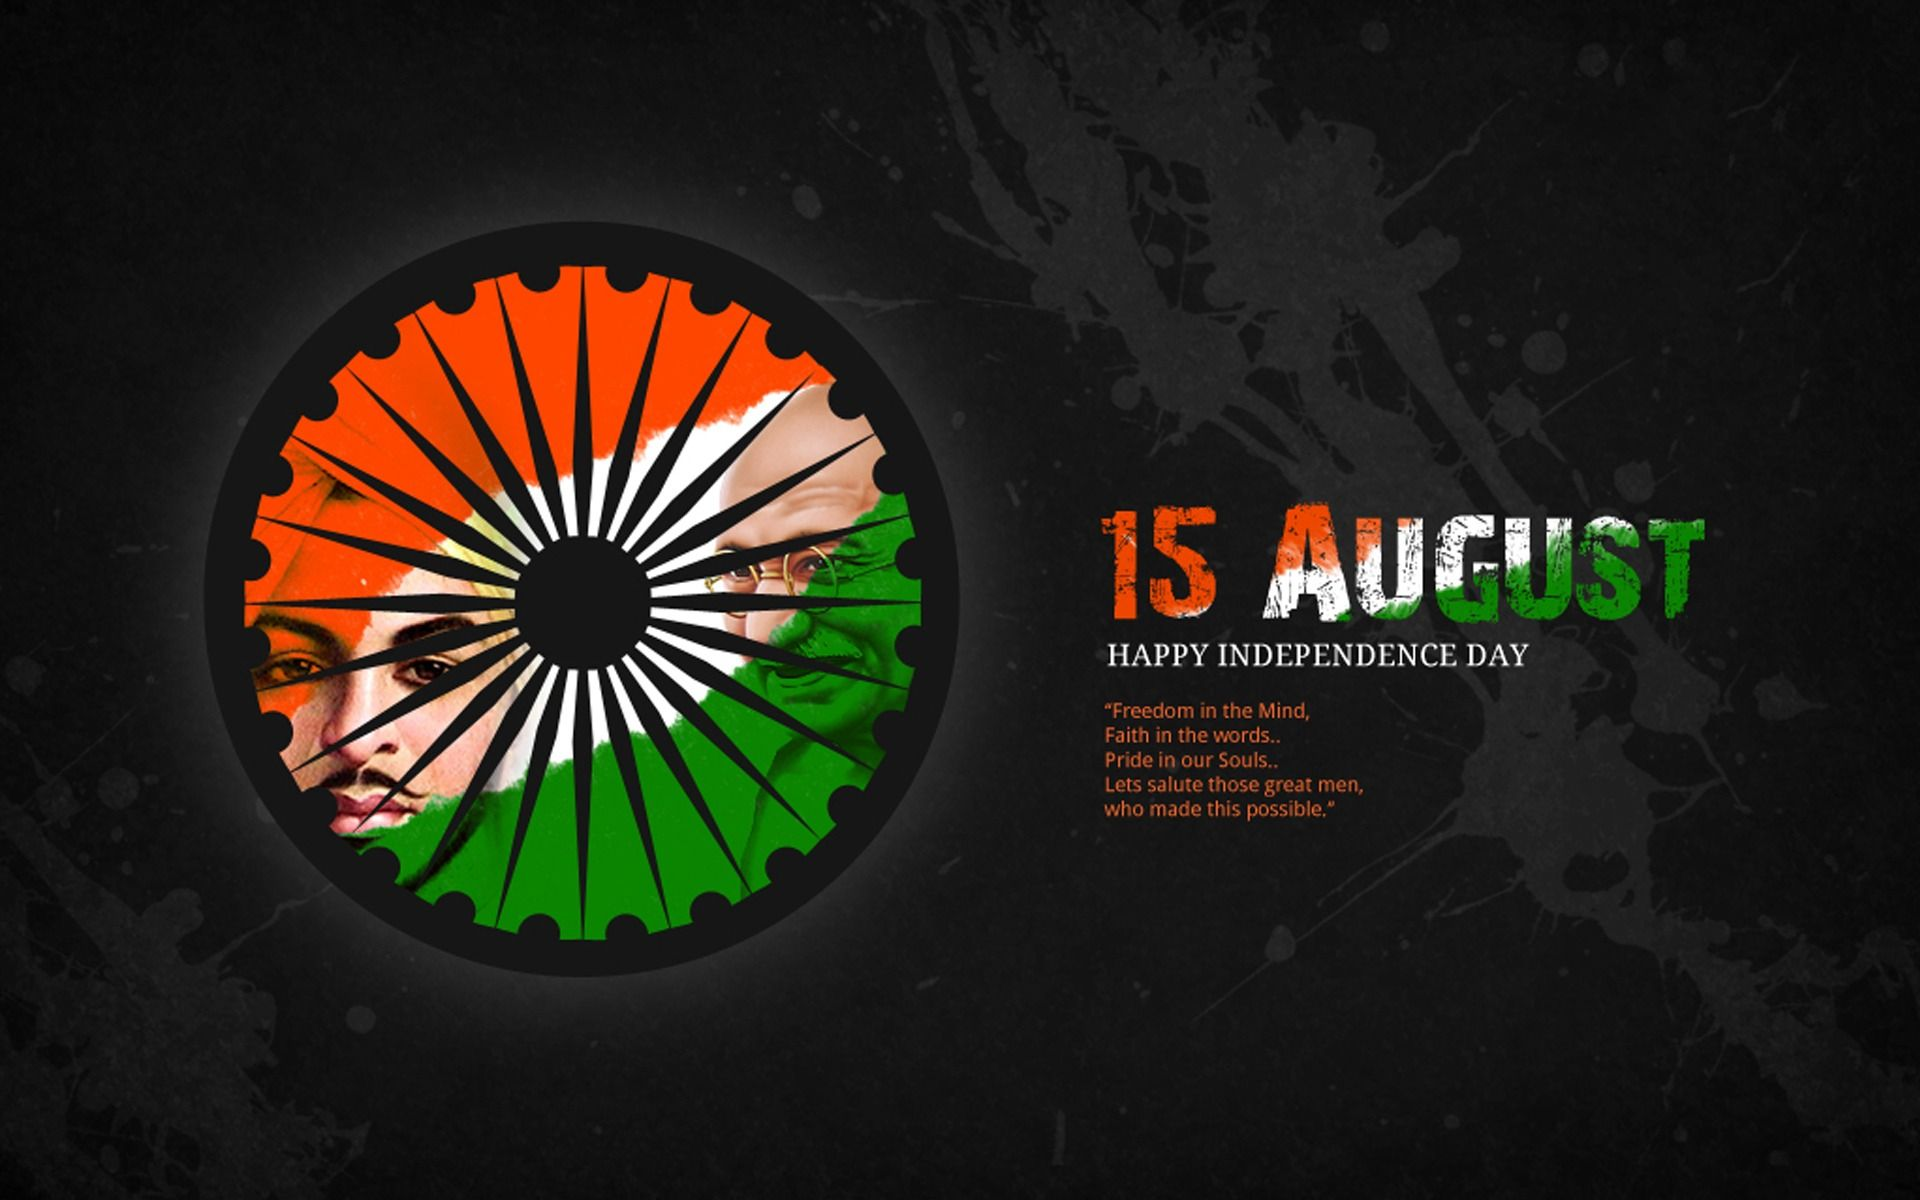 74th Independence Day 2020 HD Images, Quotes, Whatsapp